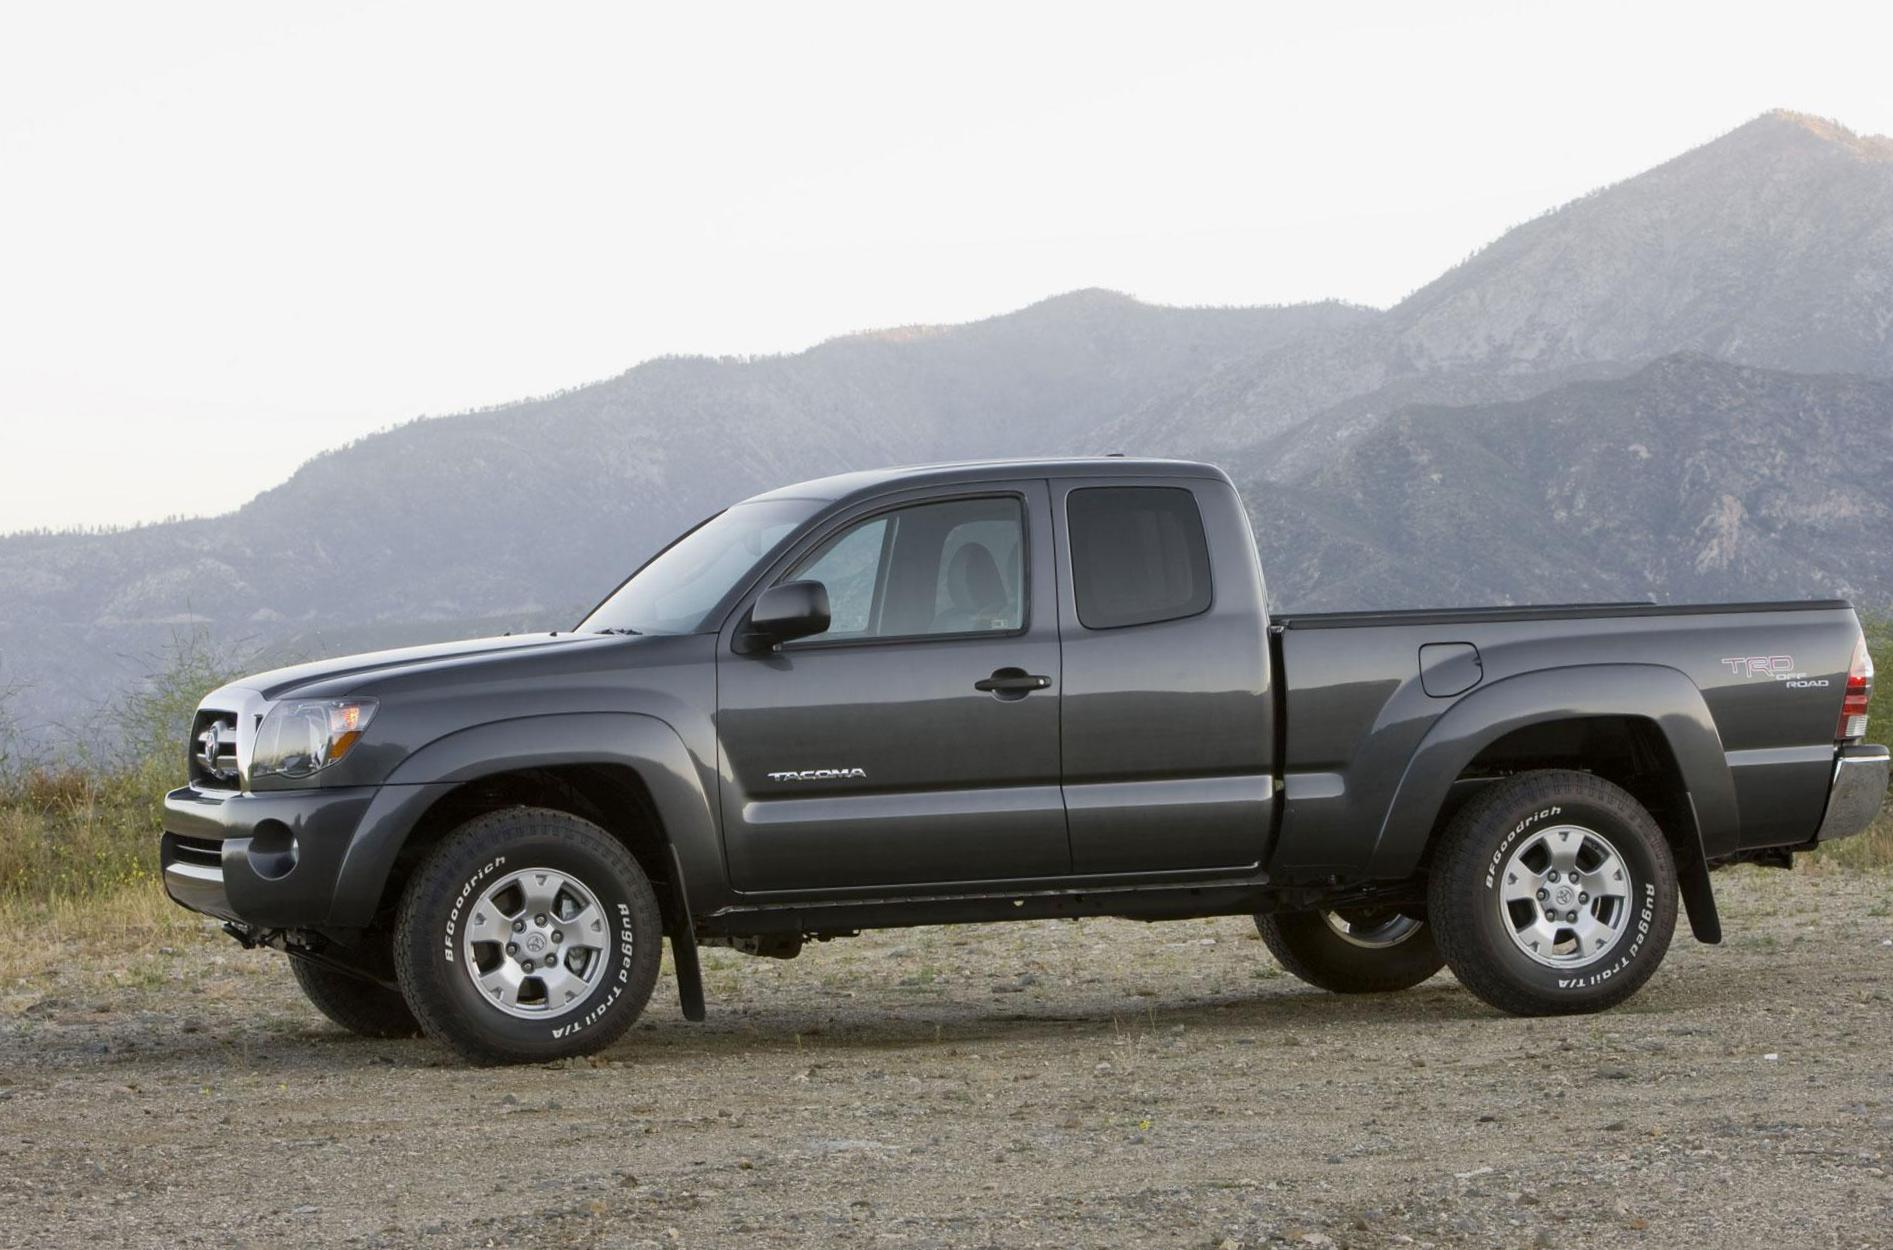 Toyota Tacoma Access Cab spec hatchback